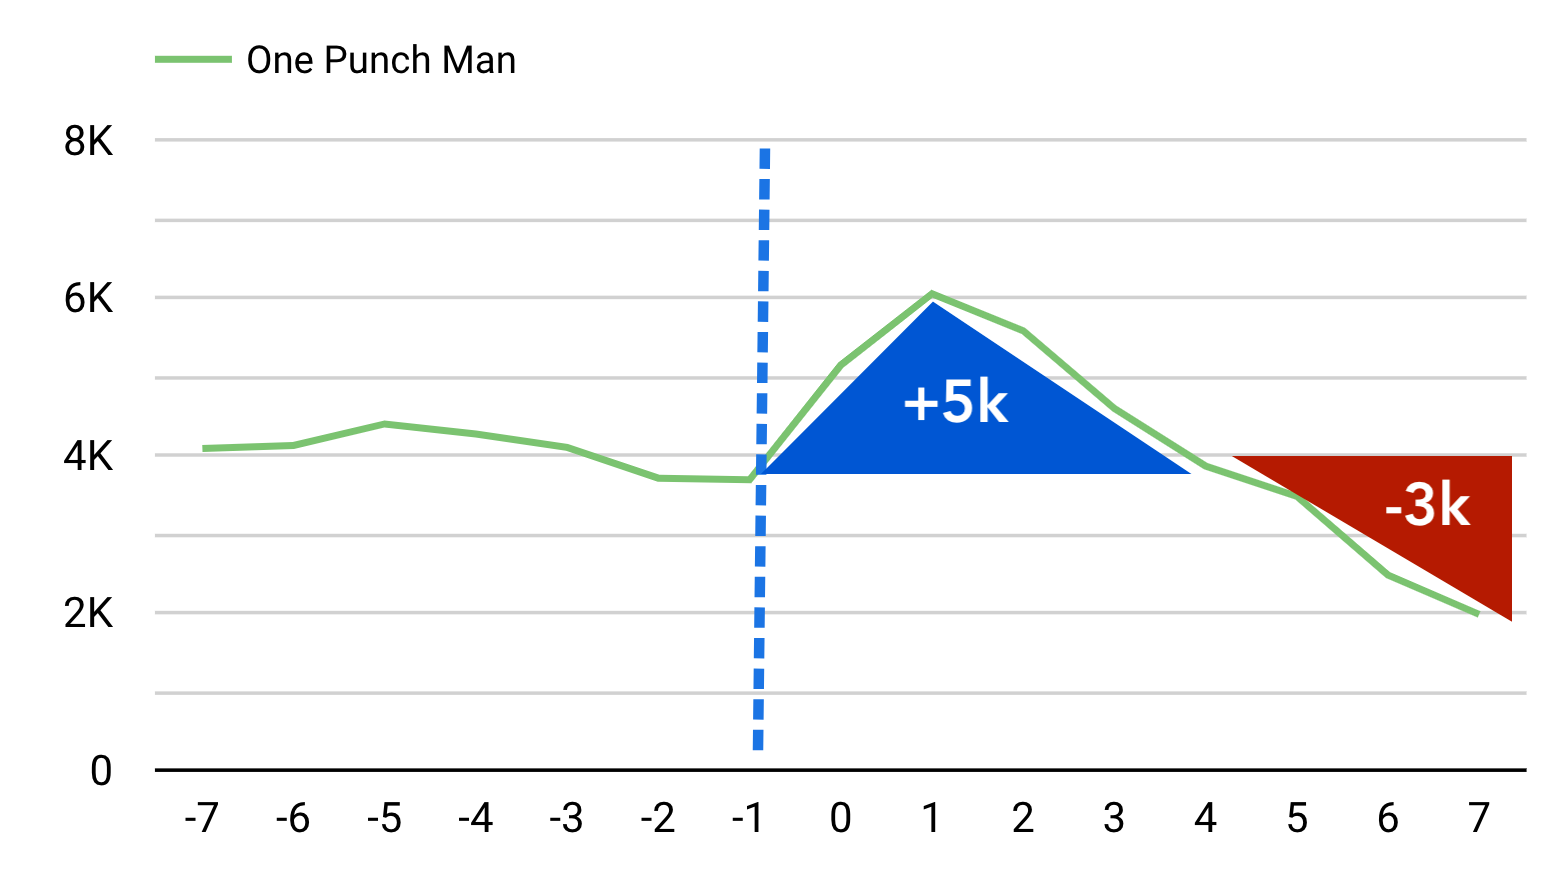 One Punch Man got 5,000 downloads just after the paid promotion, but it lost 3,000 a few days later.